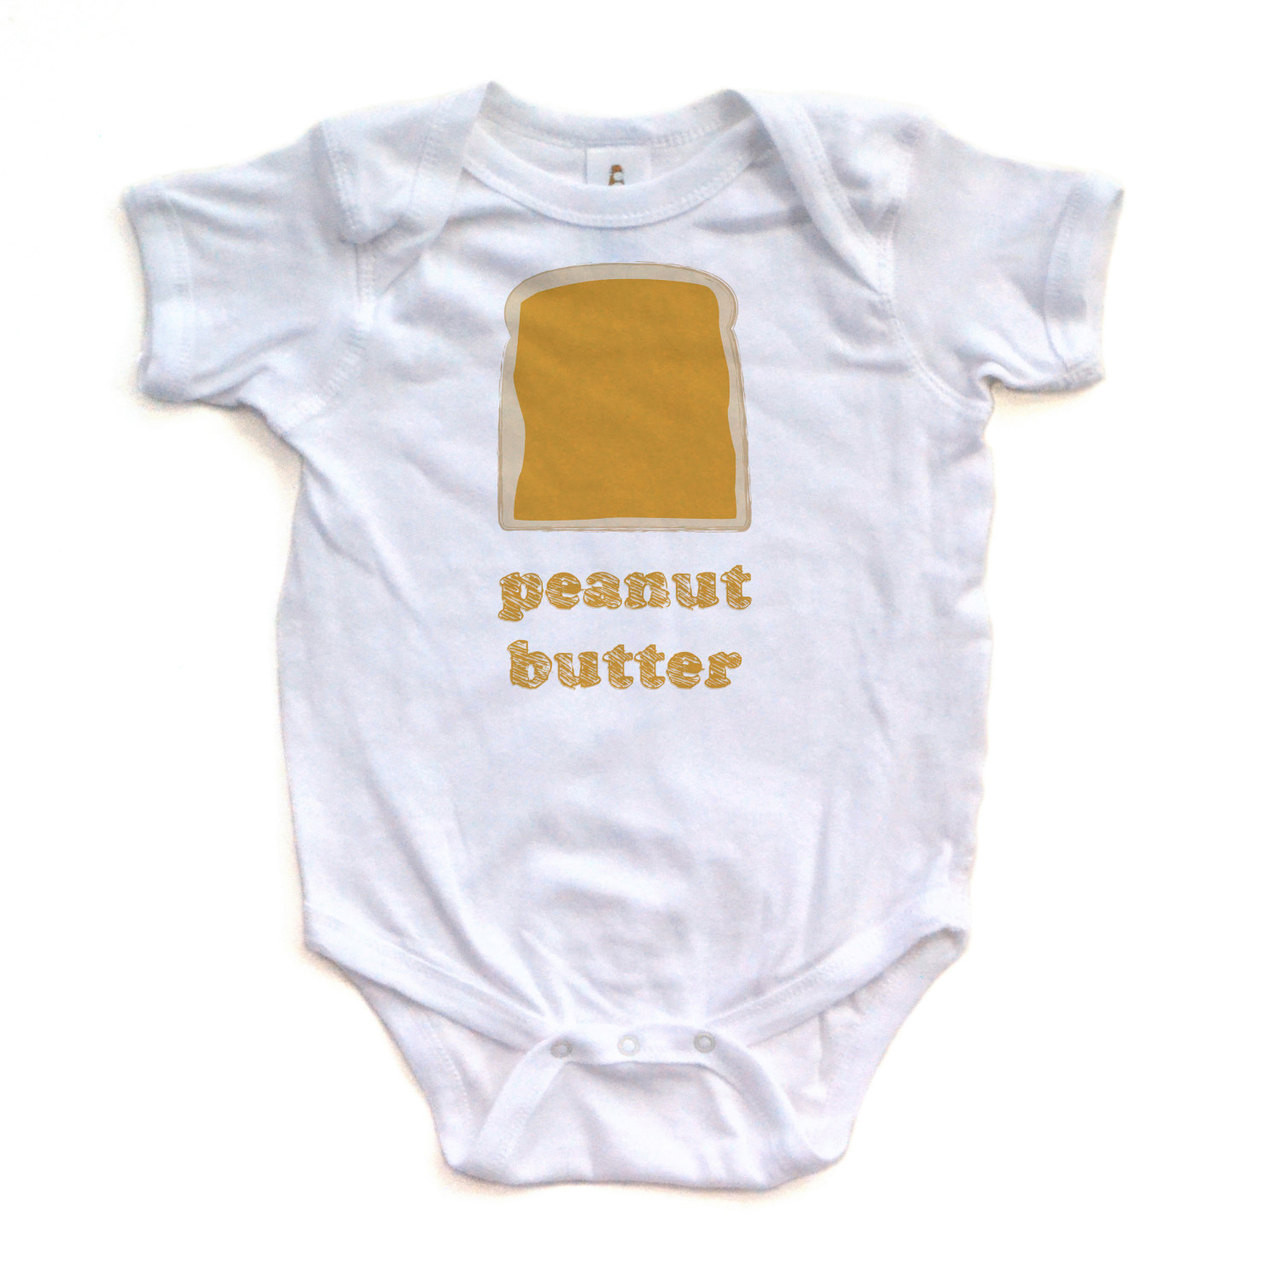 halloween costume or twins idea peanut butter and jelly set